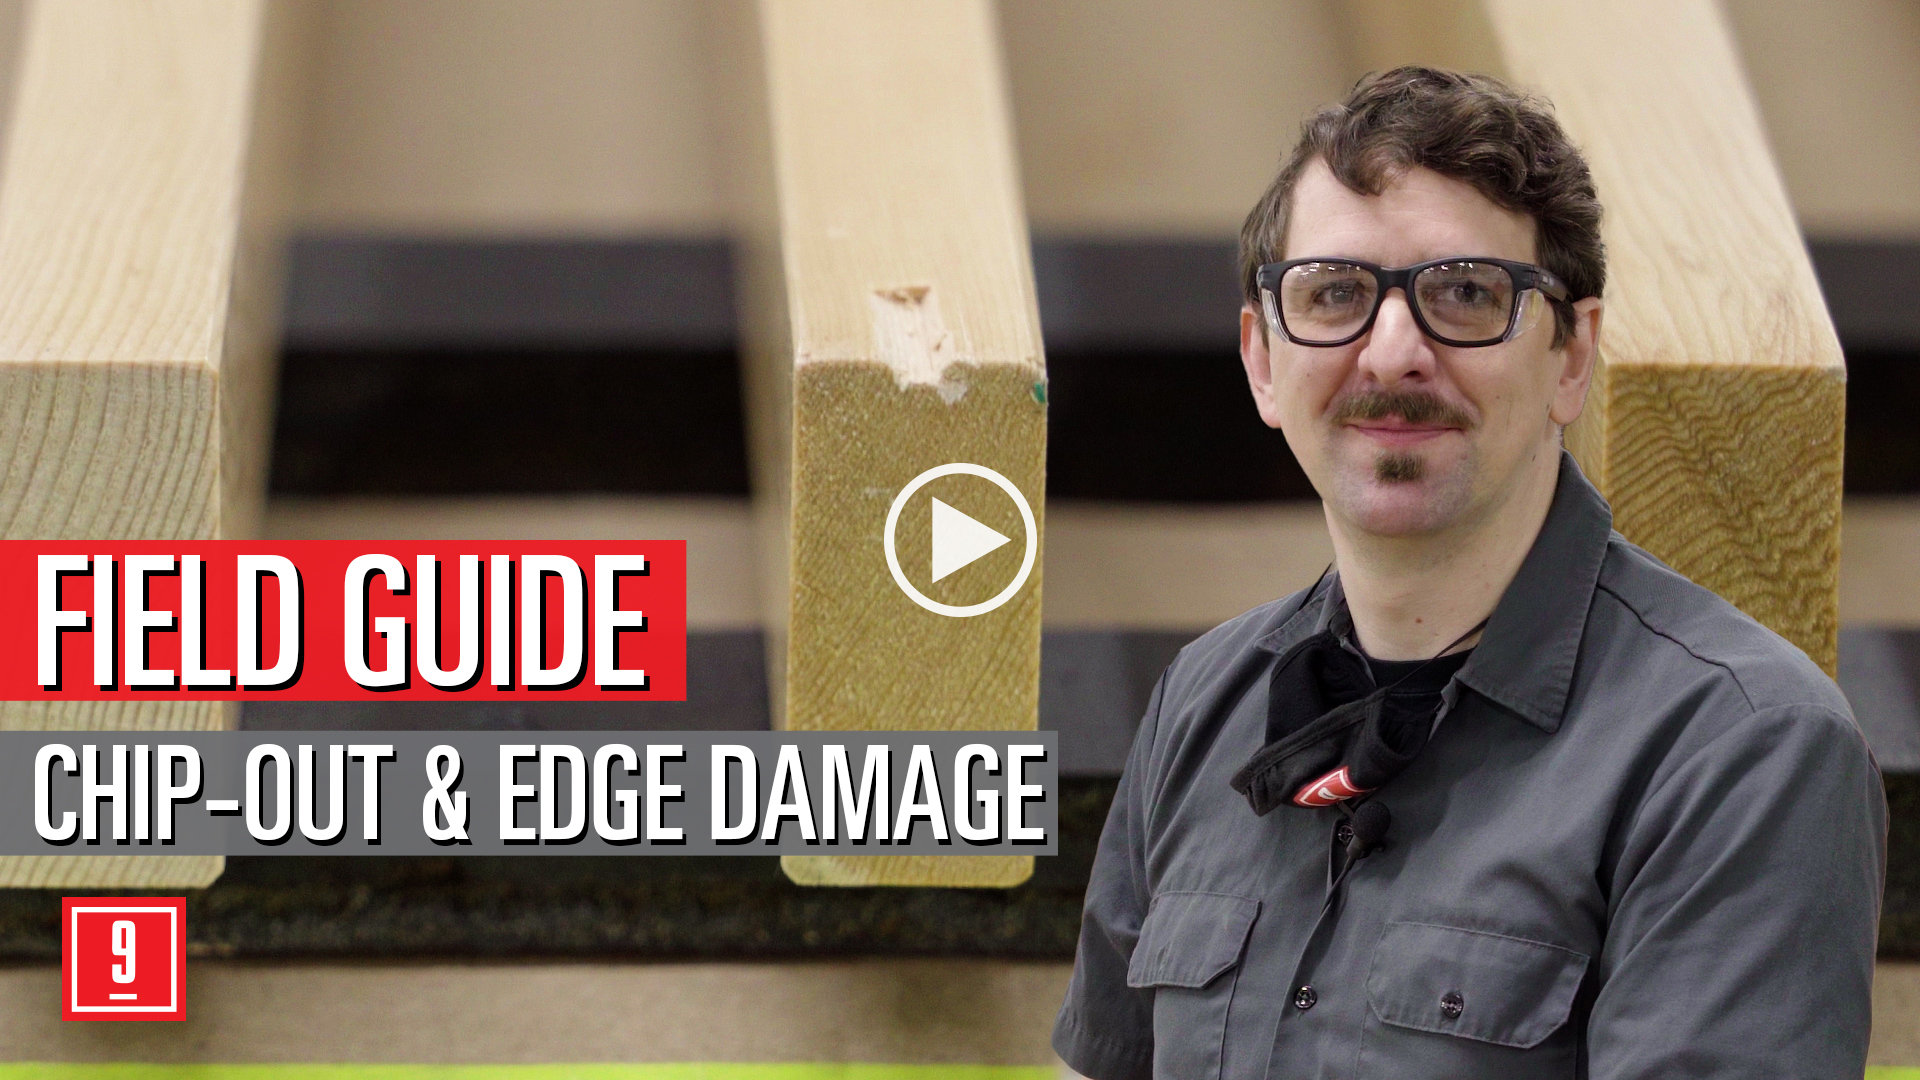 Chip-Out Edge Damage - field guide